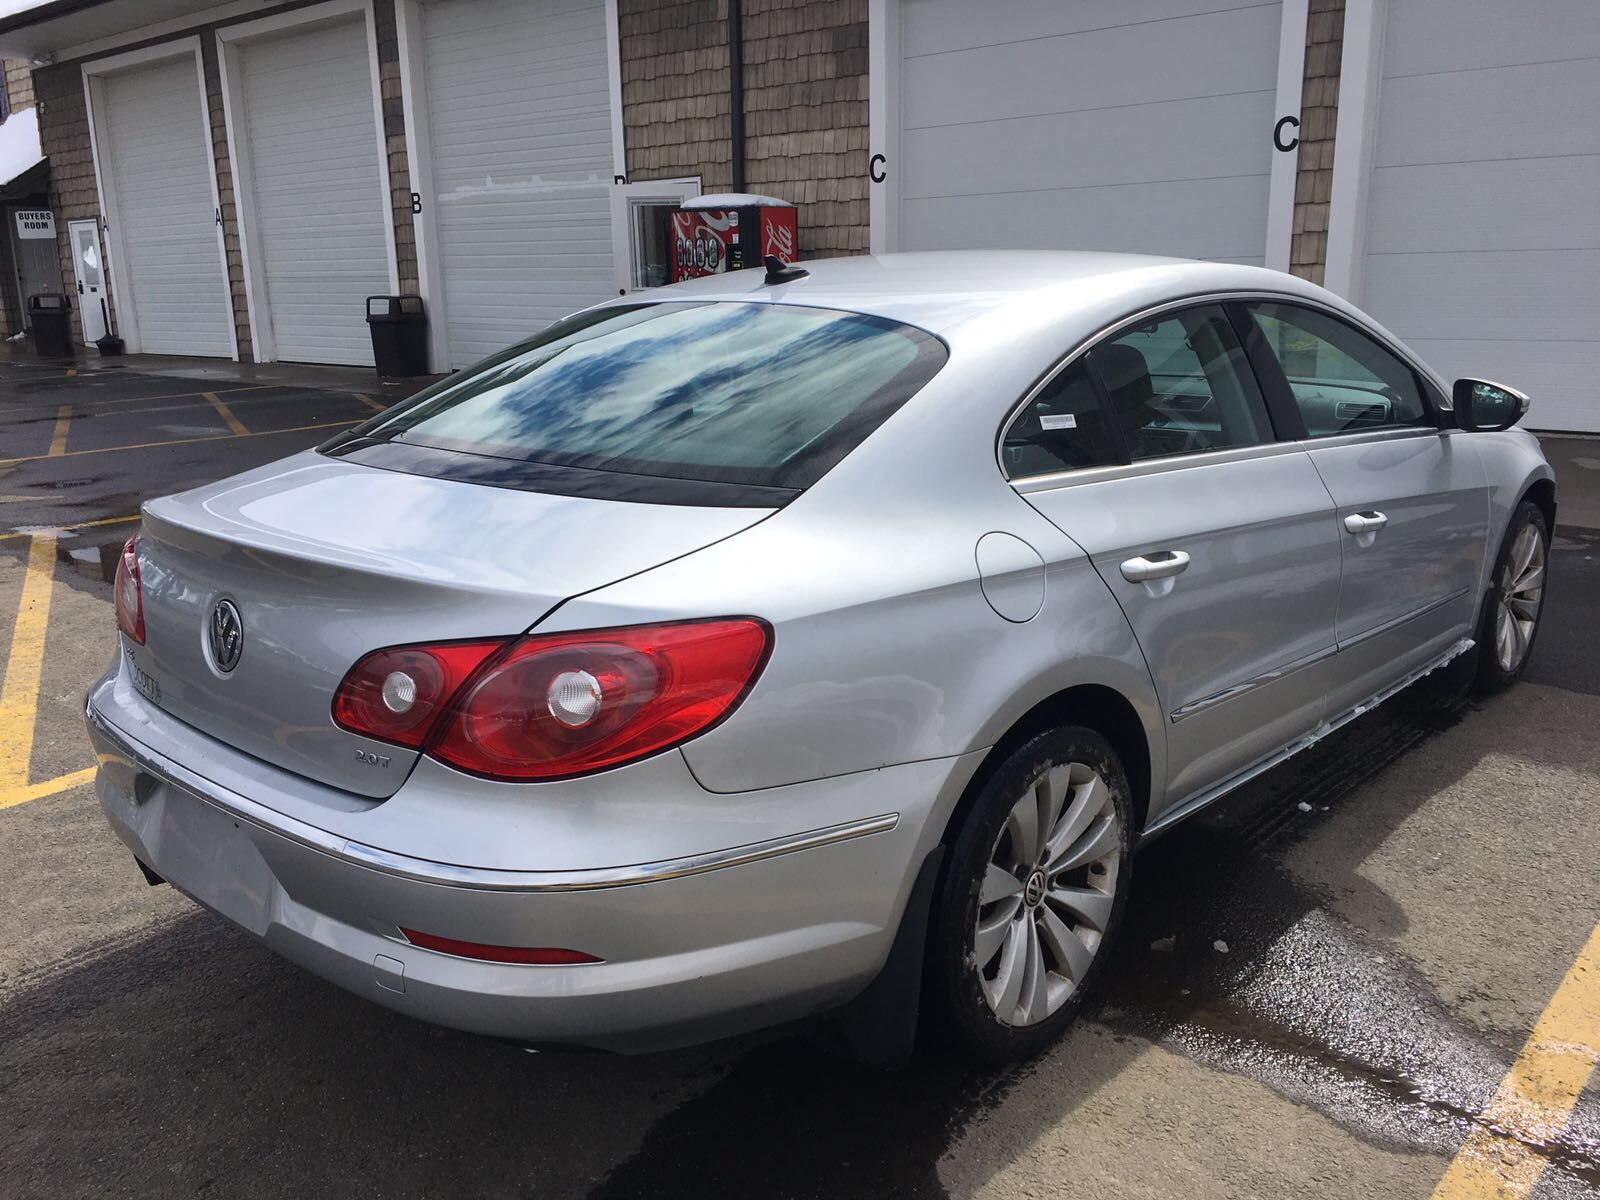 2012 volkswagen cc sport for sale at copart new britain ct lot 28414398. Black Bedroom Furniture Sets. Home Design Ideas